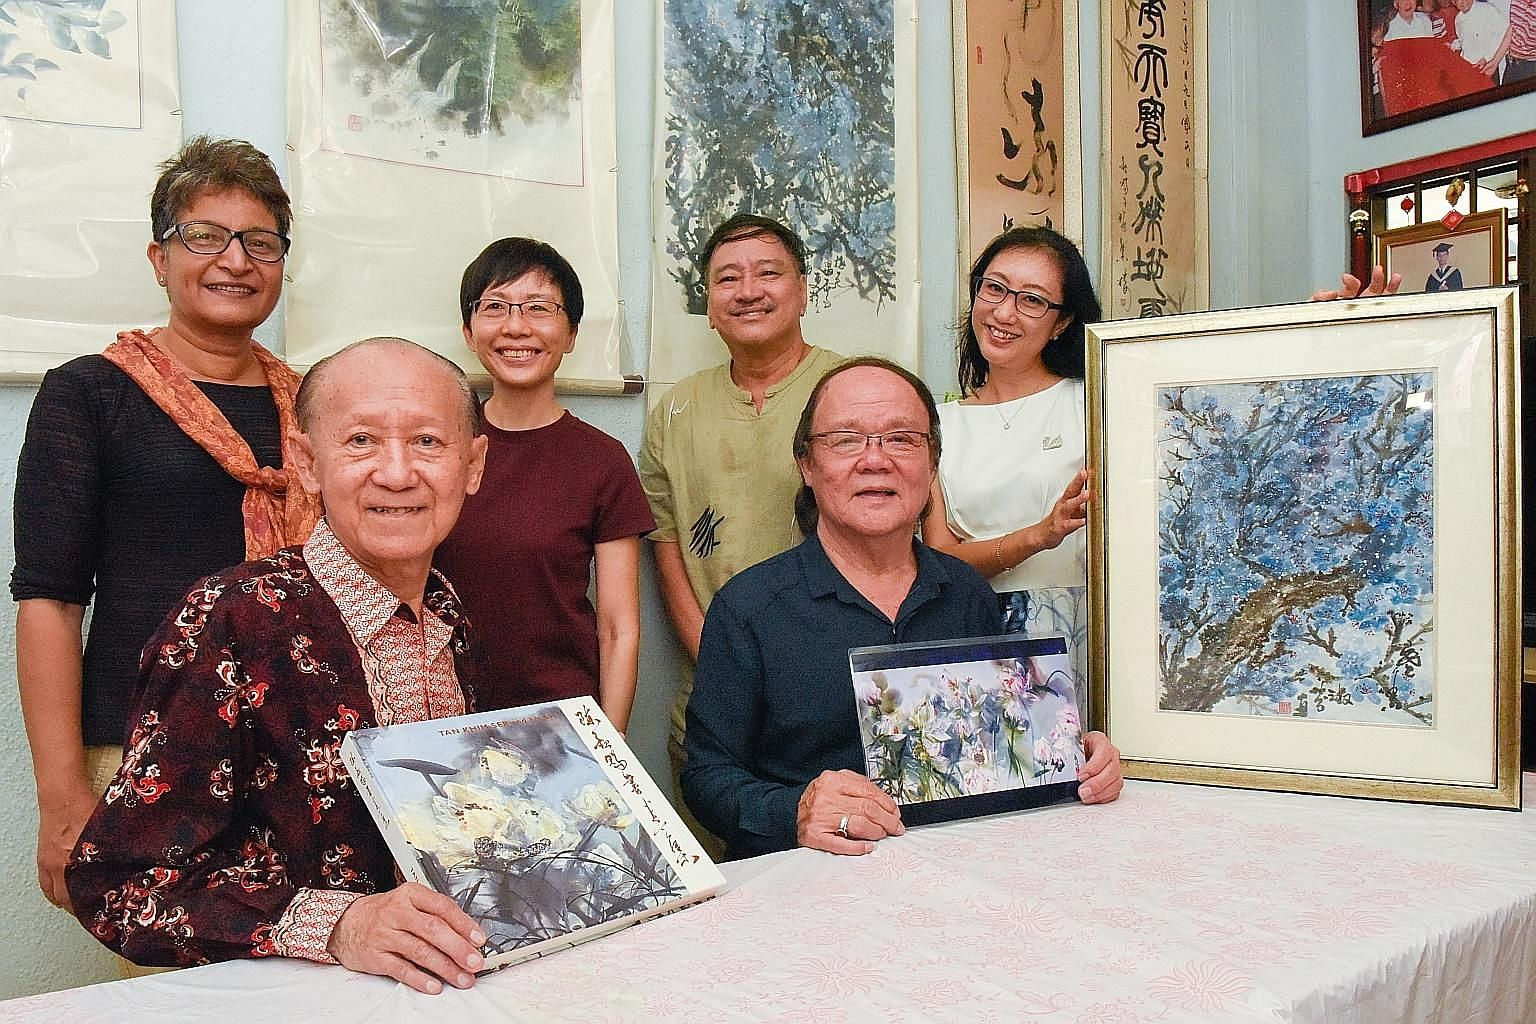 Artist Tan Khim Ser (bottom left) and Straits Times subscribers (clockwise from top left) Kala Sundaram, Lena Lim, Lai Fook Kee, Yang Shwn Fen and Benny Khong, whose paintings, created at a workshop with Tan, will be showcased at a the art exhibition